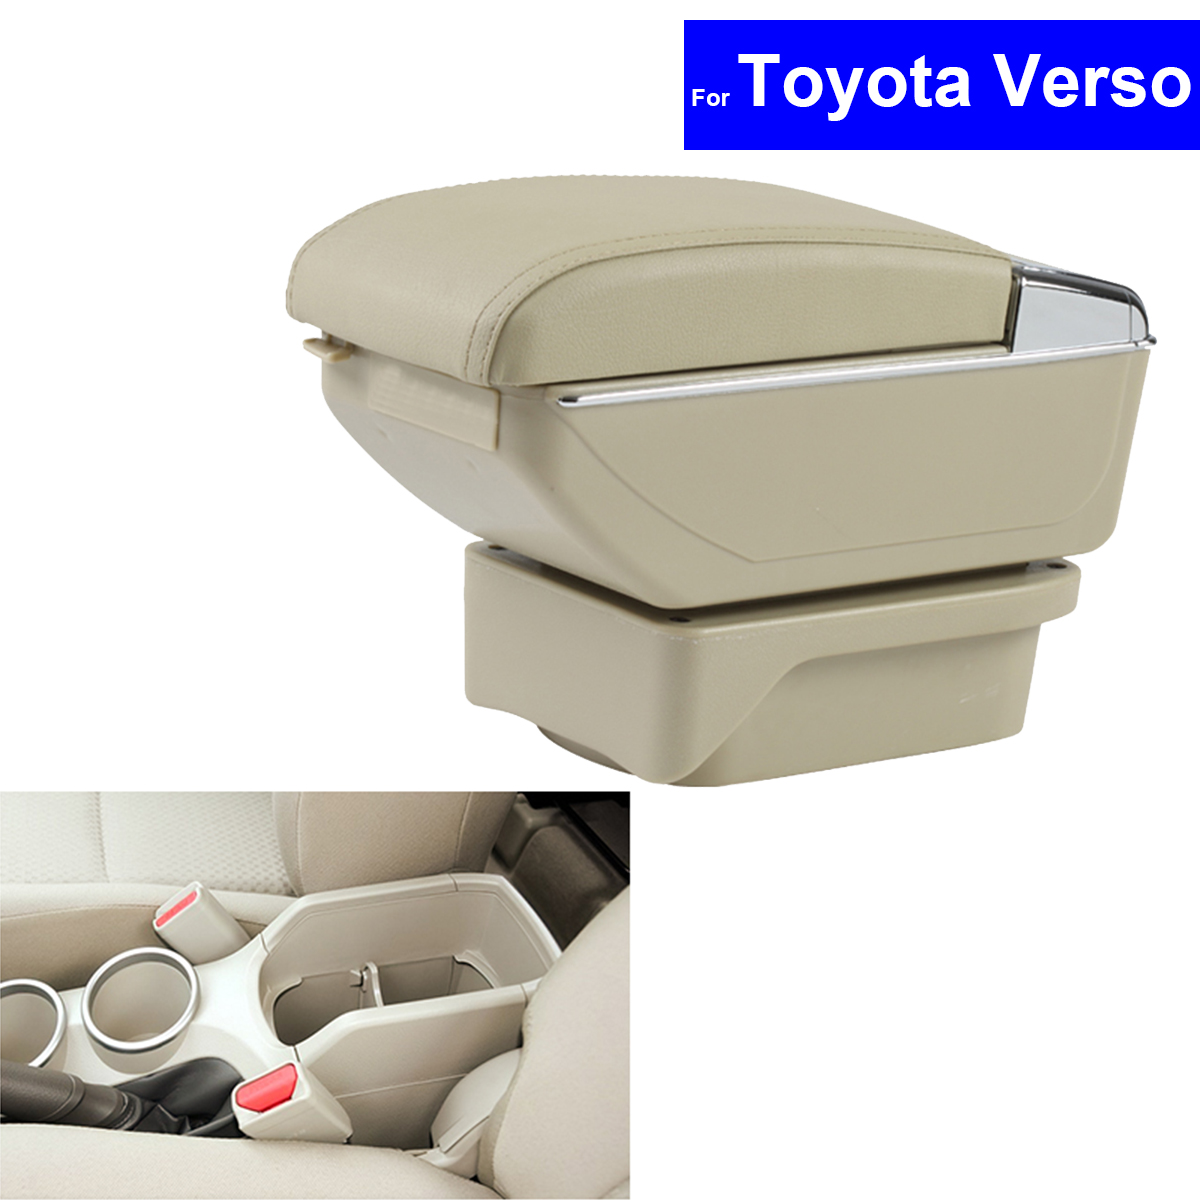 Leather Center Console Armrest Storage Box for Toyota Verso 2011 2012 2013 2014 2015 Armrests Free Shipping цены онлайн